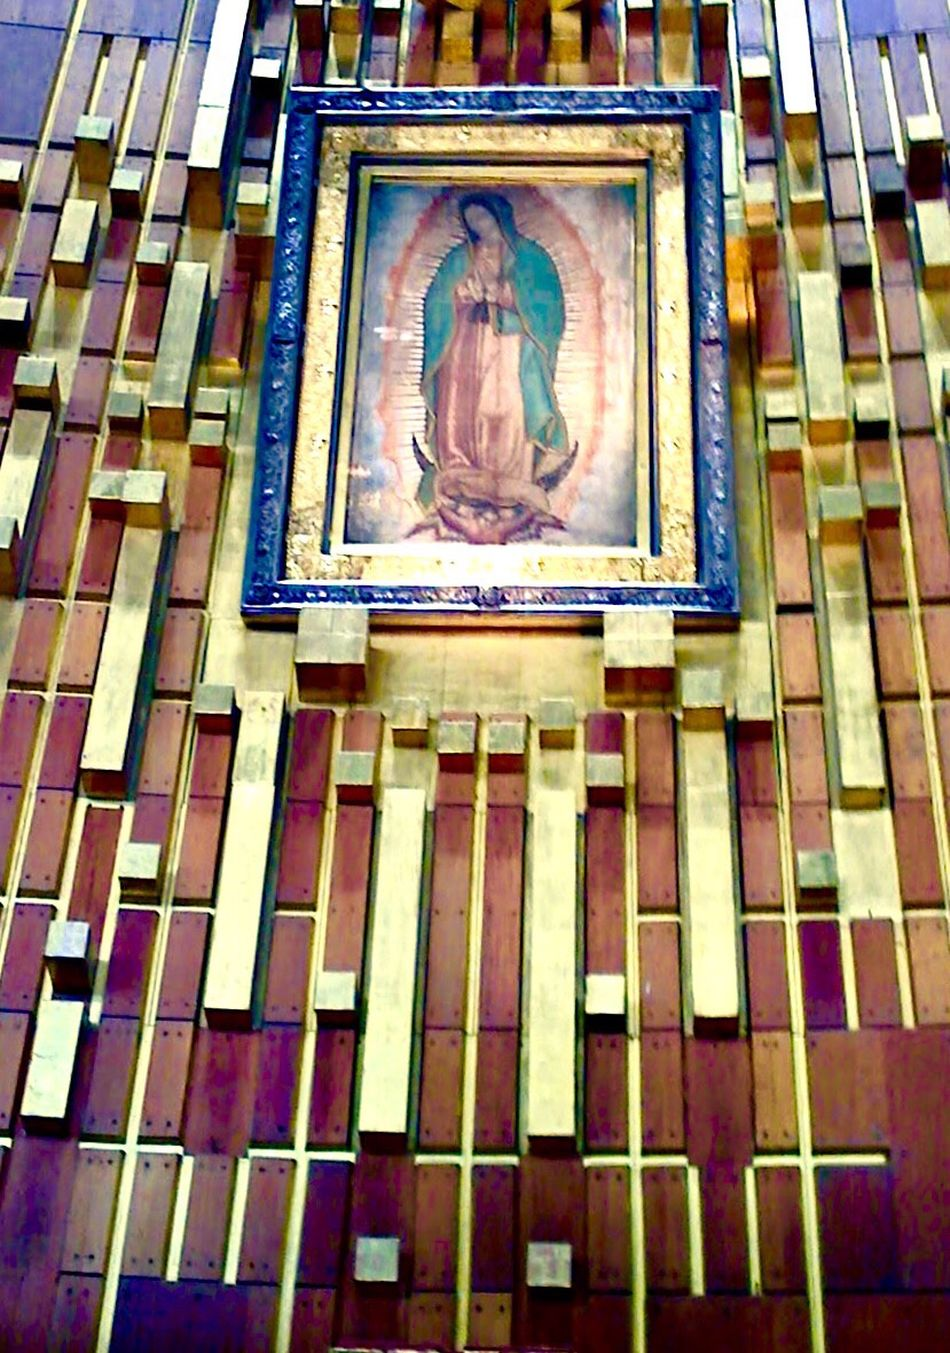 Villa de Guadalupe, Mexico On Dec. 12, the Catholic Church celebrates the Feast of Our Lady of Guadalupe, marking the day when, in 1531, the Blessed Mother appeared in Mexico to a 57-year old peasant named Juan Diego. Basilica De Guadalupe Mexico City Guadalupe's Virgen Virgen De Guadalupe Check This Out Hanging Out Taking Photos IPhoneography Mexico Una Mirada Al Mundo Telling Stories Differently